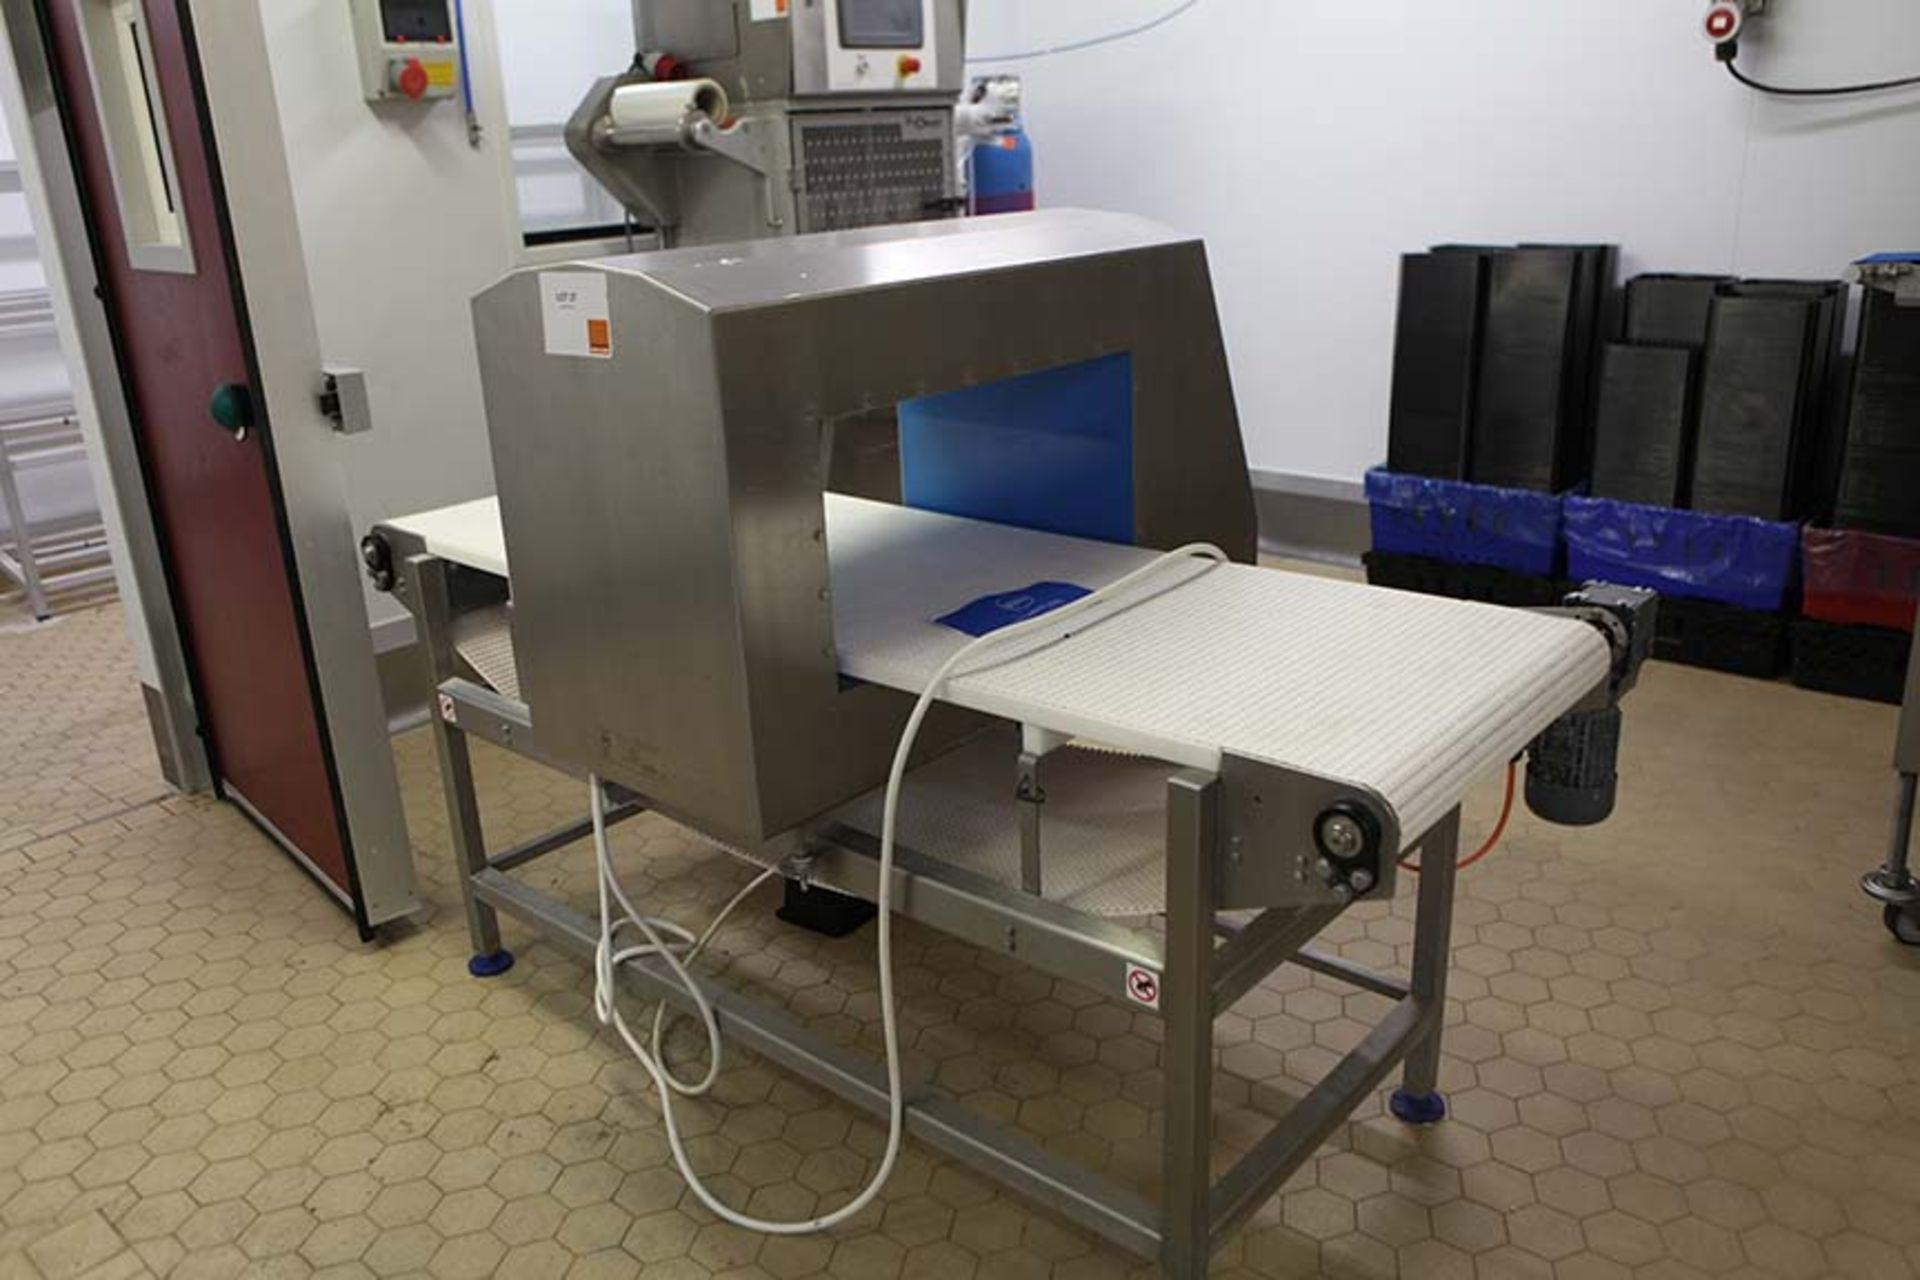 Lot 27 - LOMA IQ3 Metal Detector IQ3SD 2015 Sn 293490 on frame with motorised belt conveyor